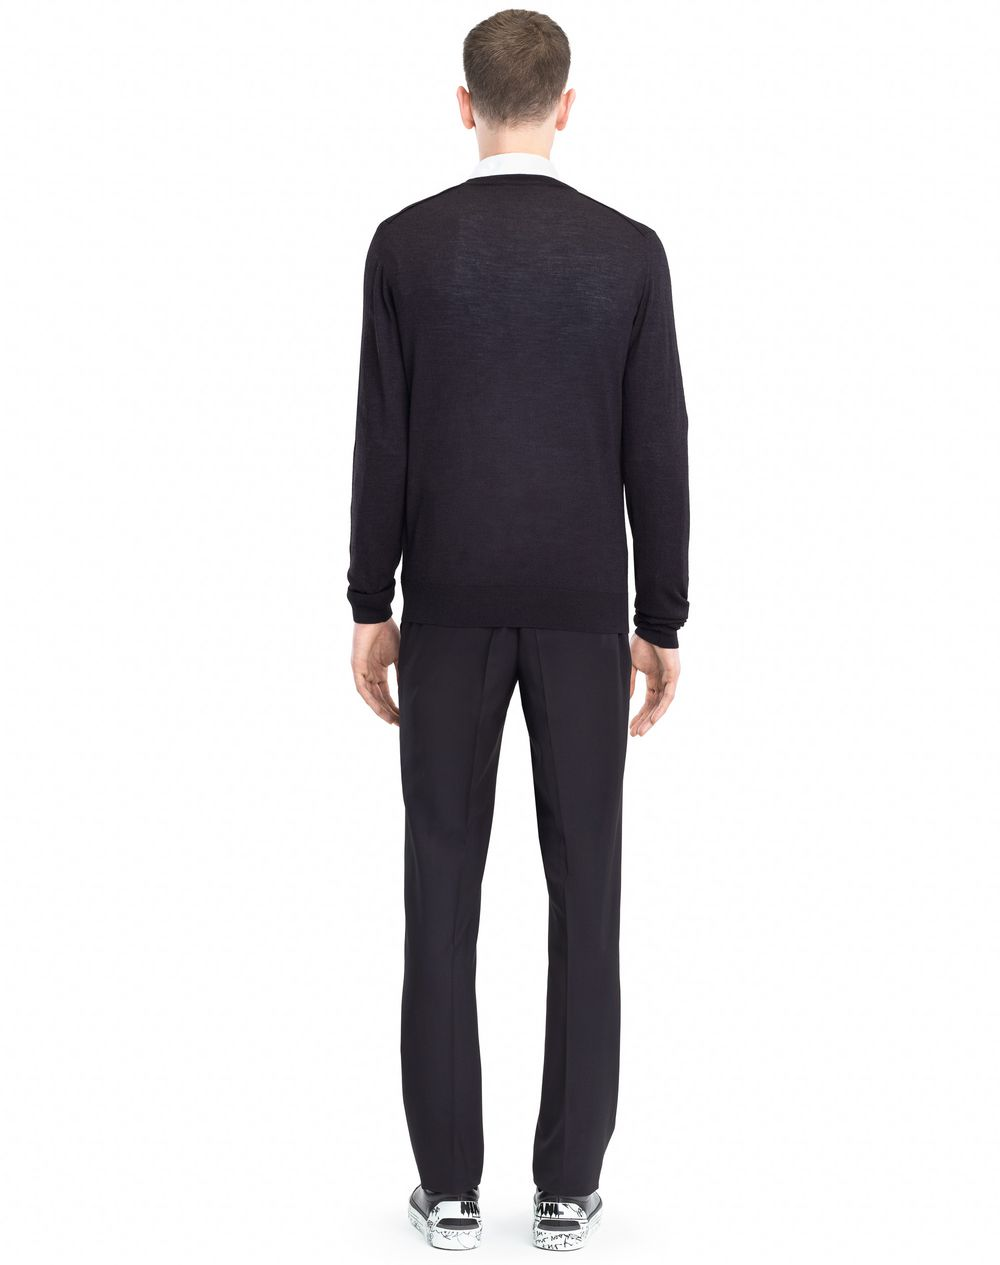 MOULINÉ NECK SWEATER - Lanvin